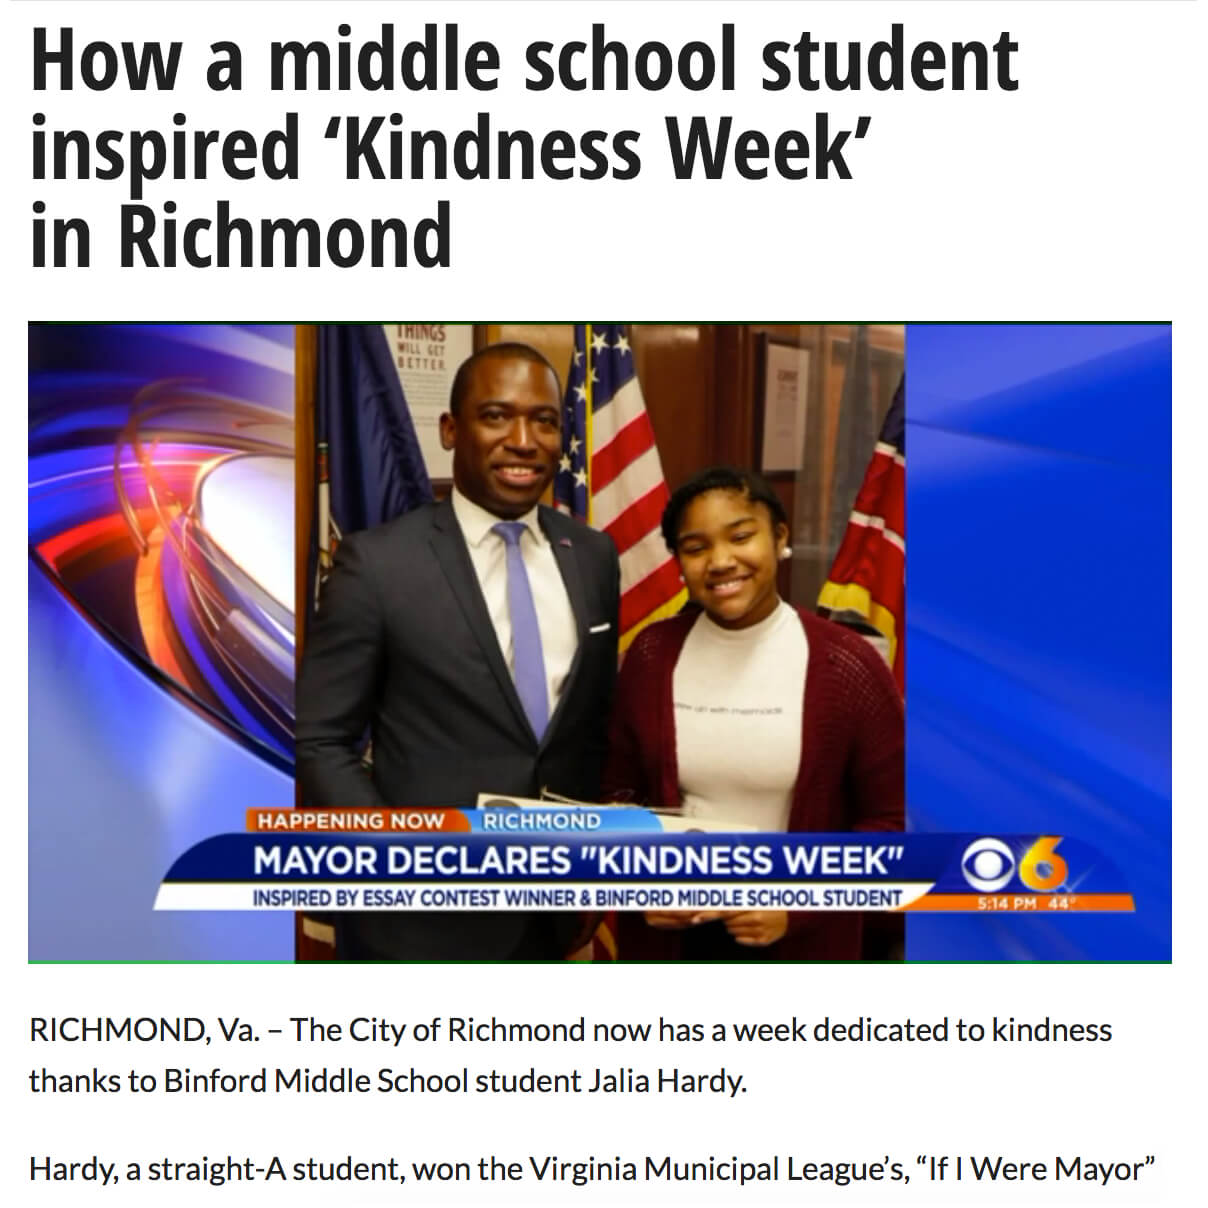 Middle School Student Inspires Kindness Week in Richmond